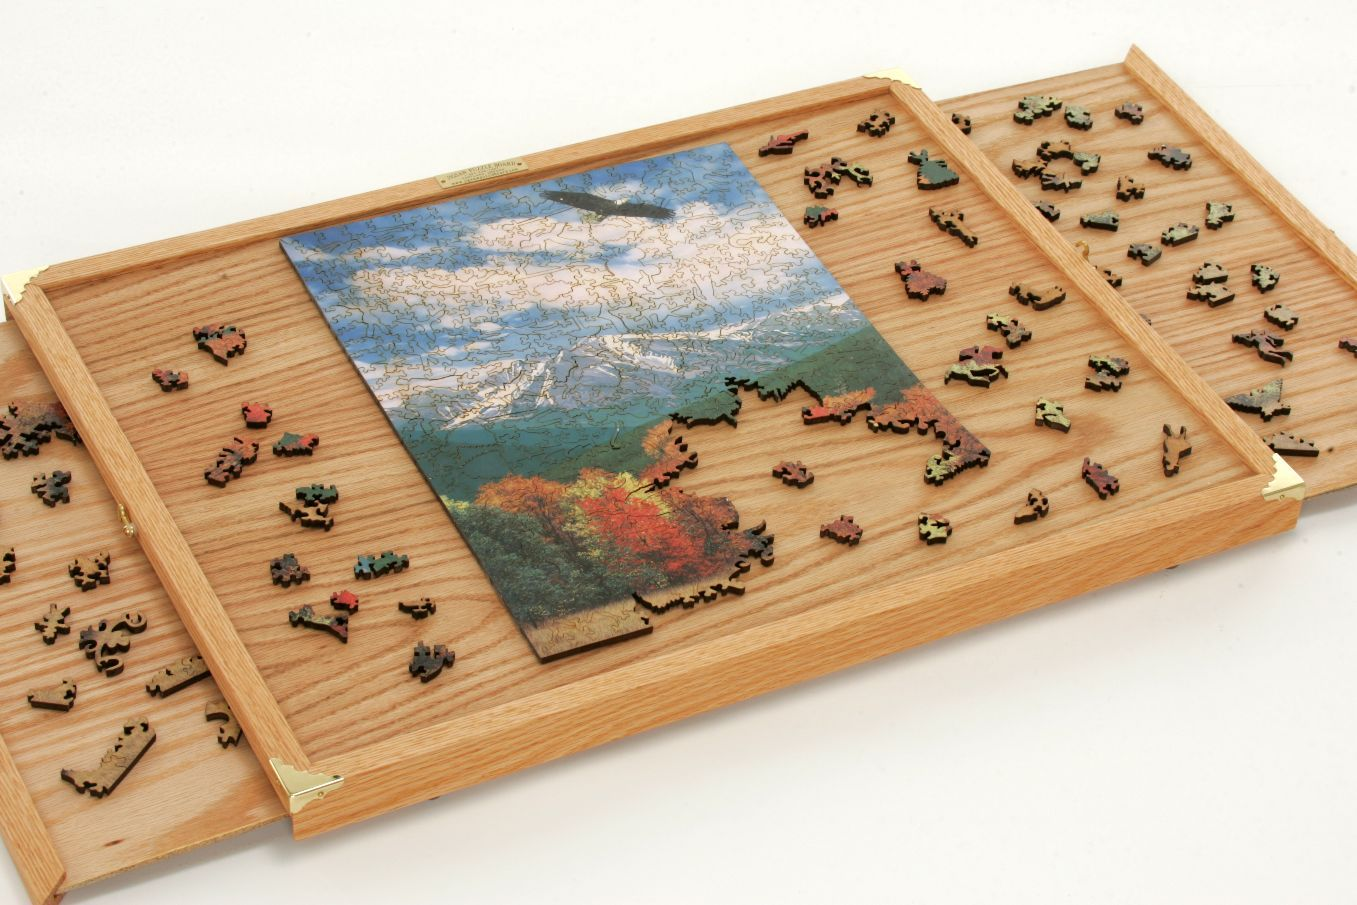 Puzzle Board Puzzle Board In 2019 Jigsaw Puzzle Table